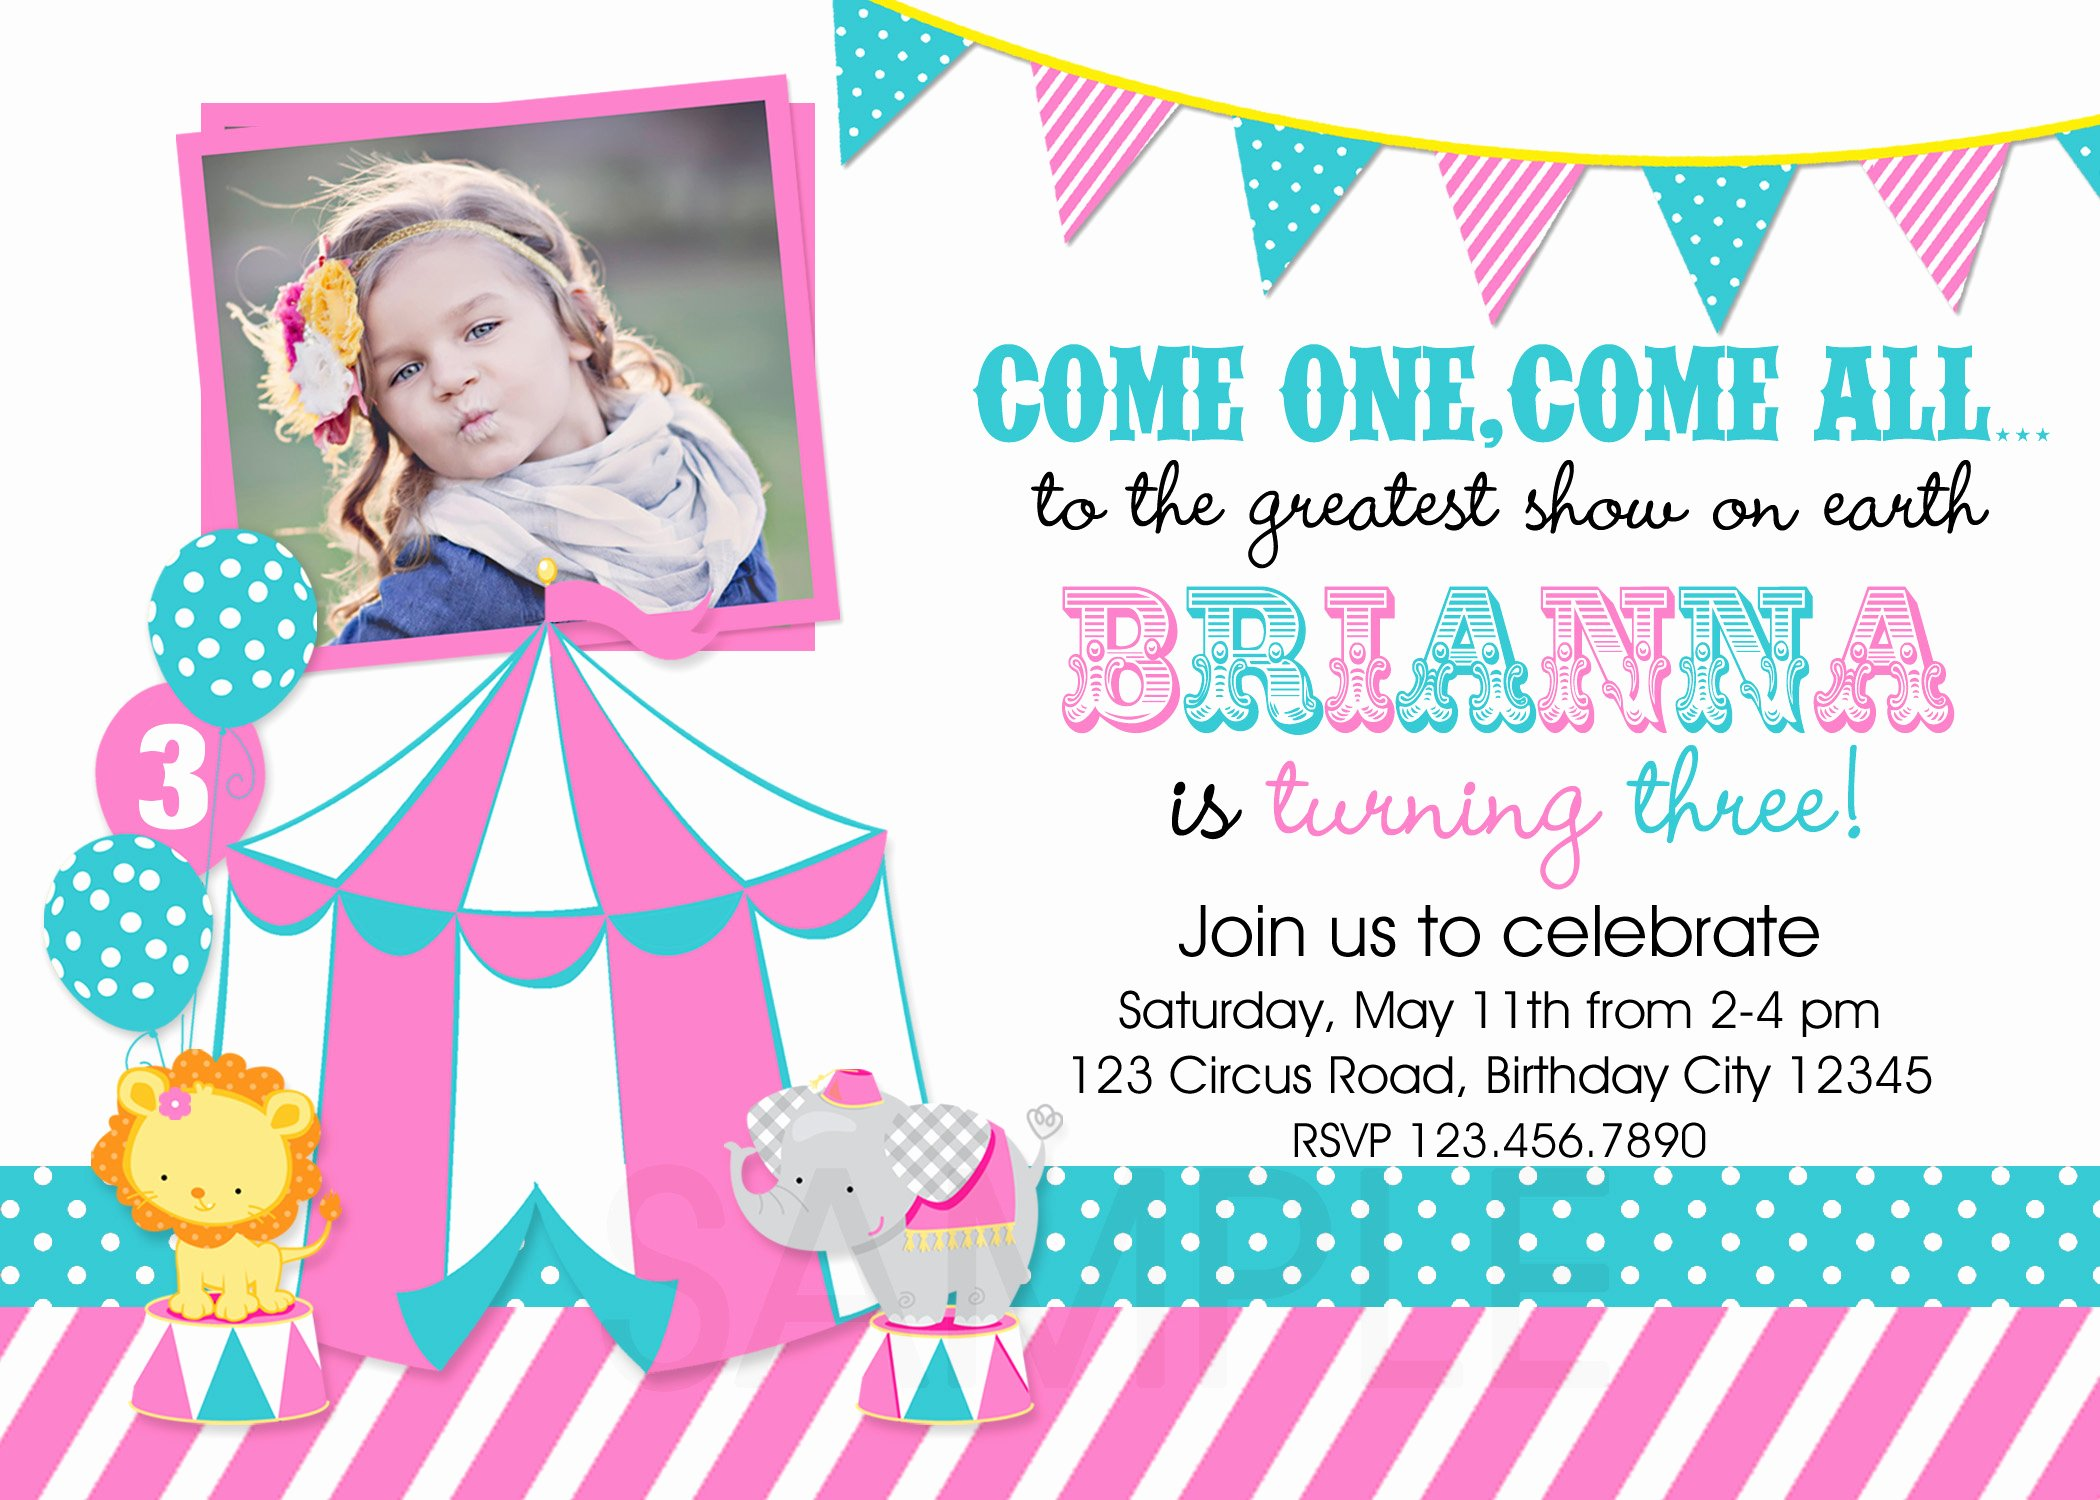 Carnival Birthday Party Invitations Elegant Printable Birthday Party Invitations Circus Carnival theme Invitation